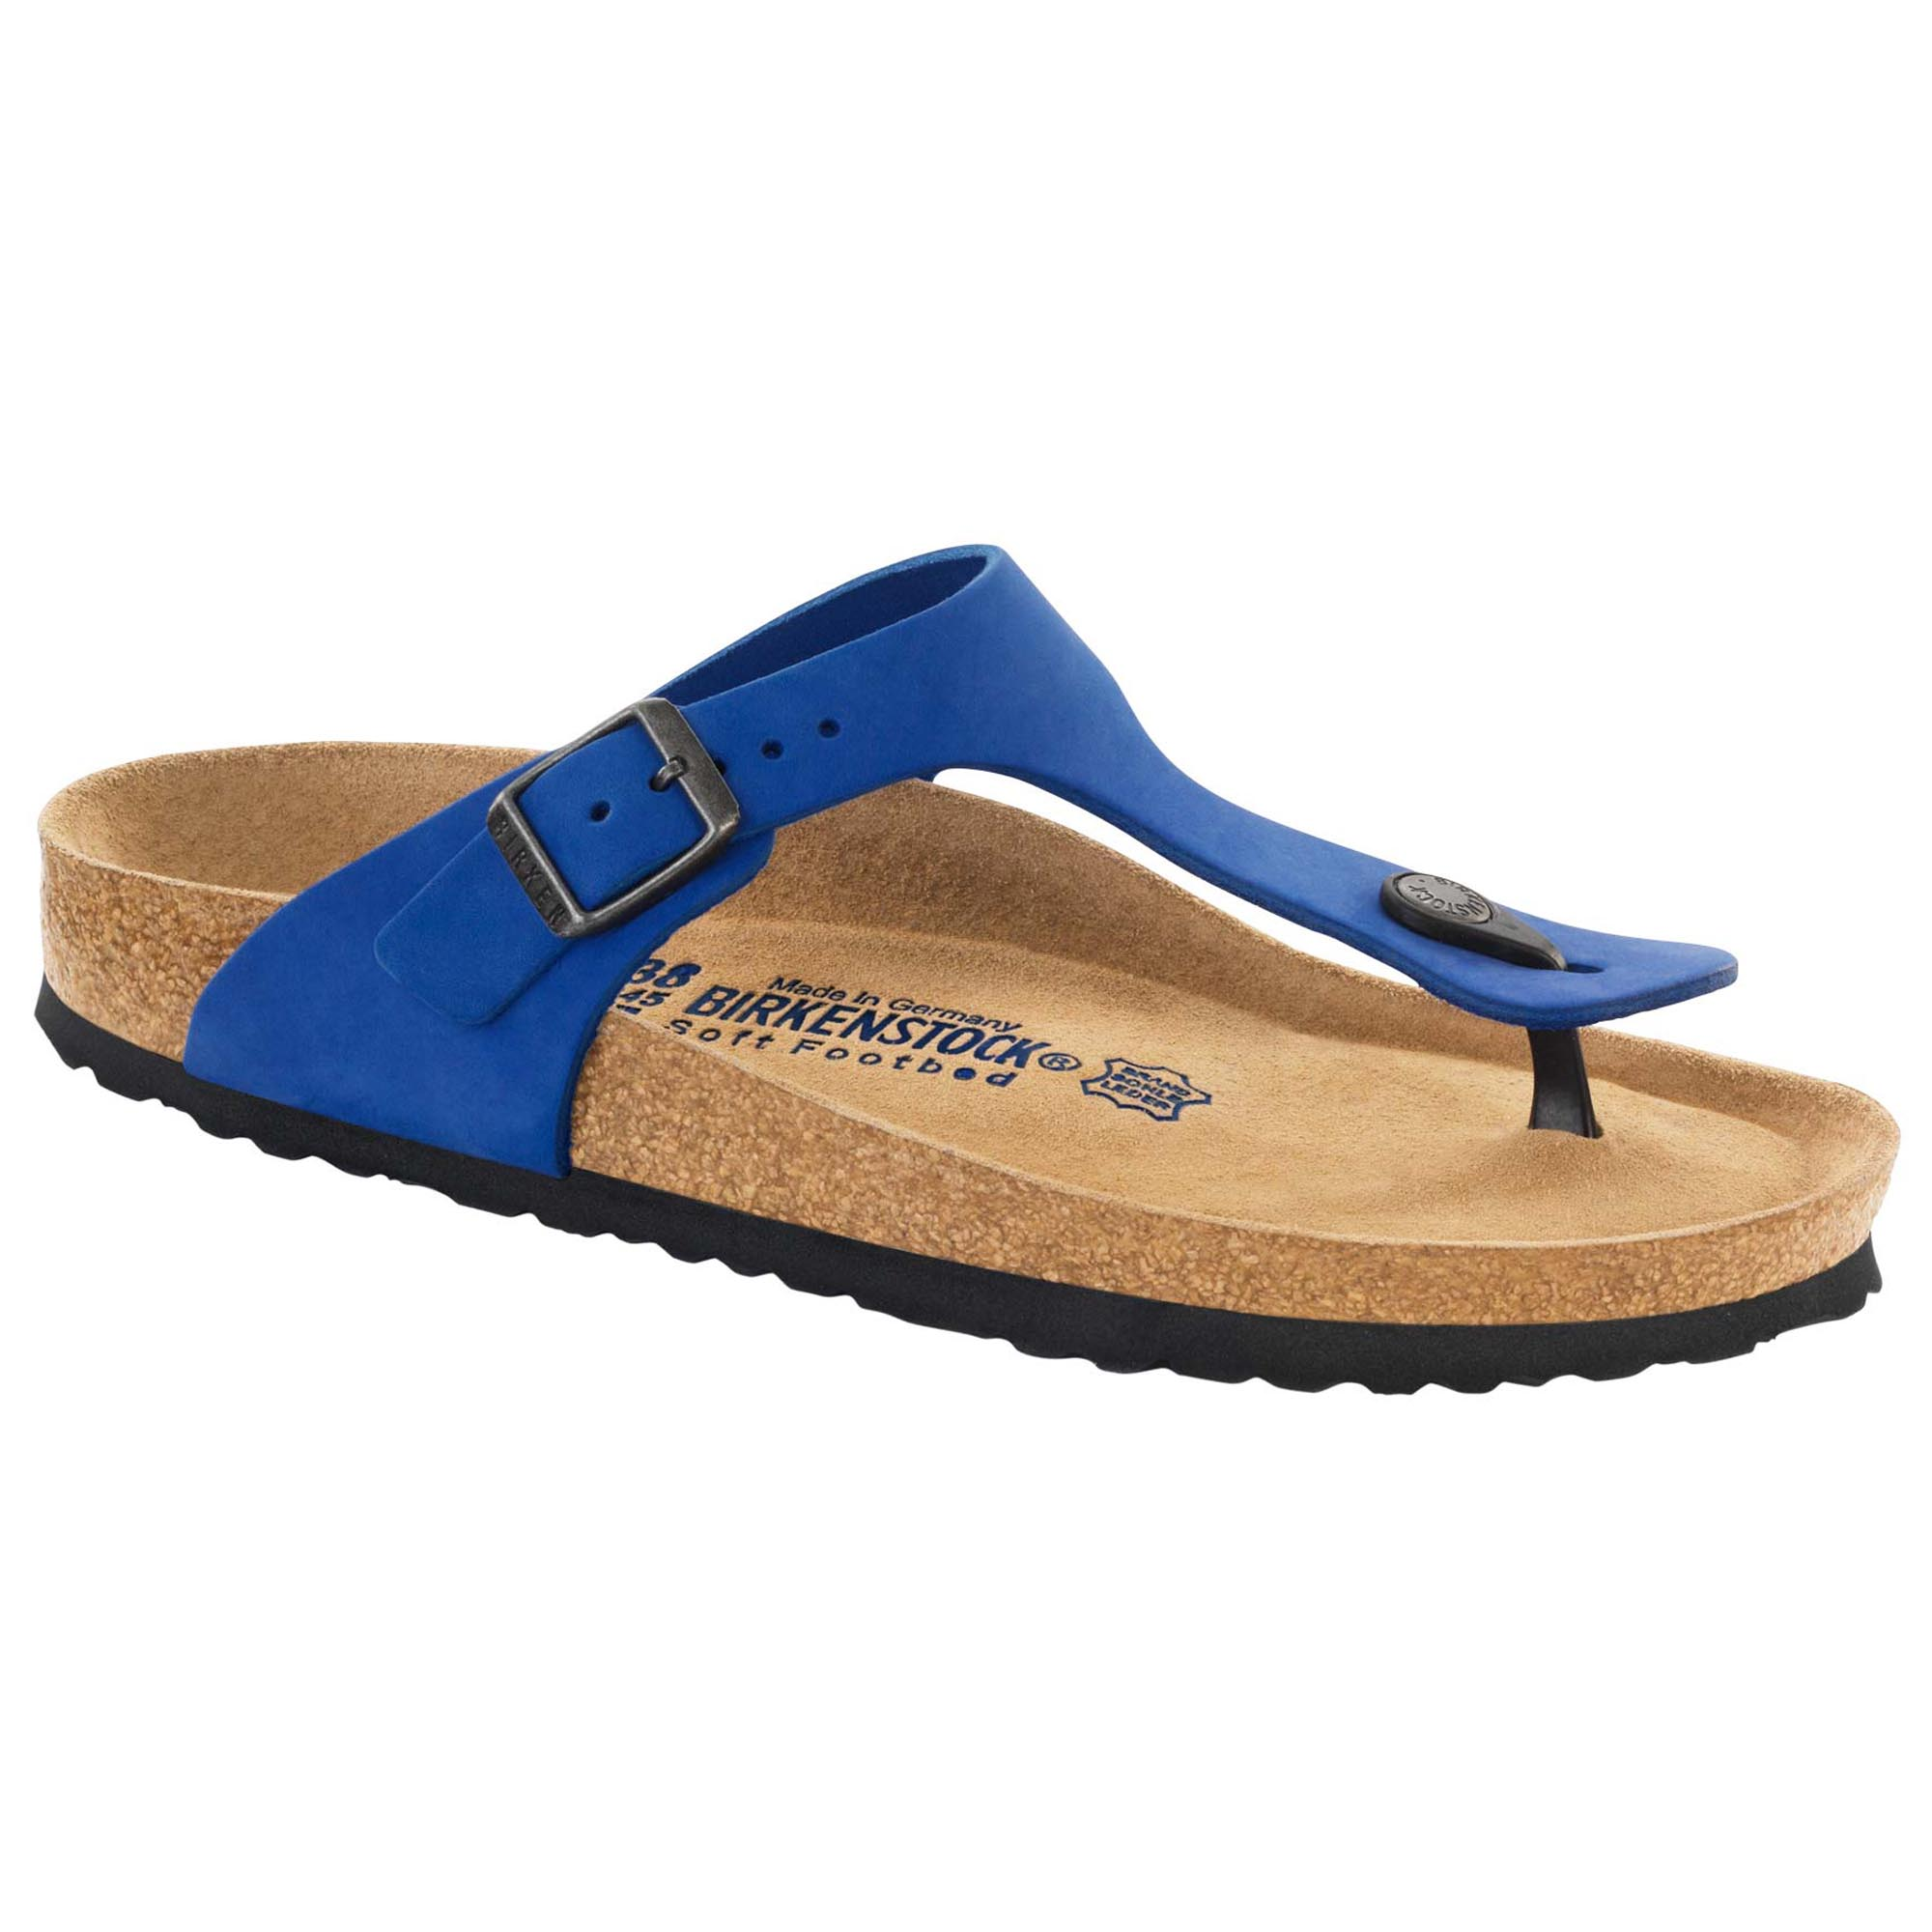 Gizeh Nubuck Leather Soft Footbed Blue